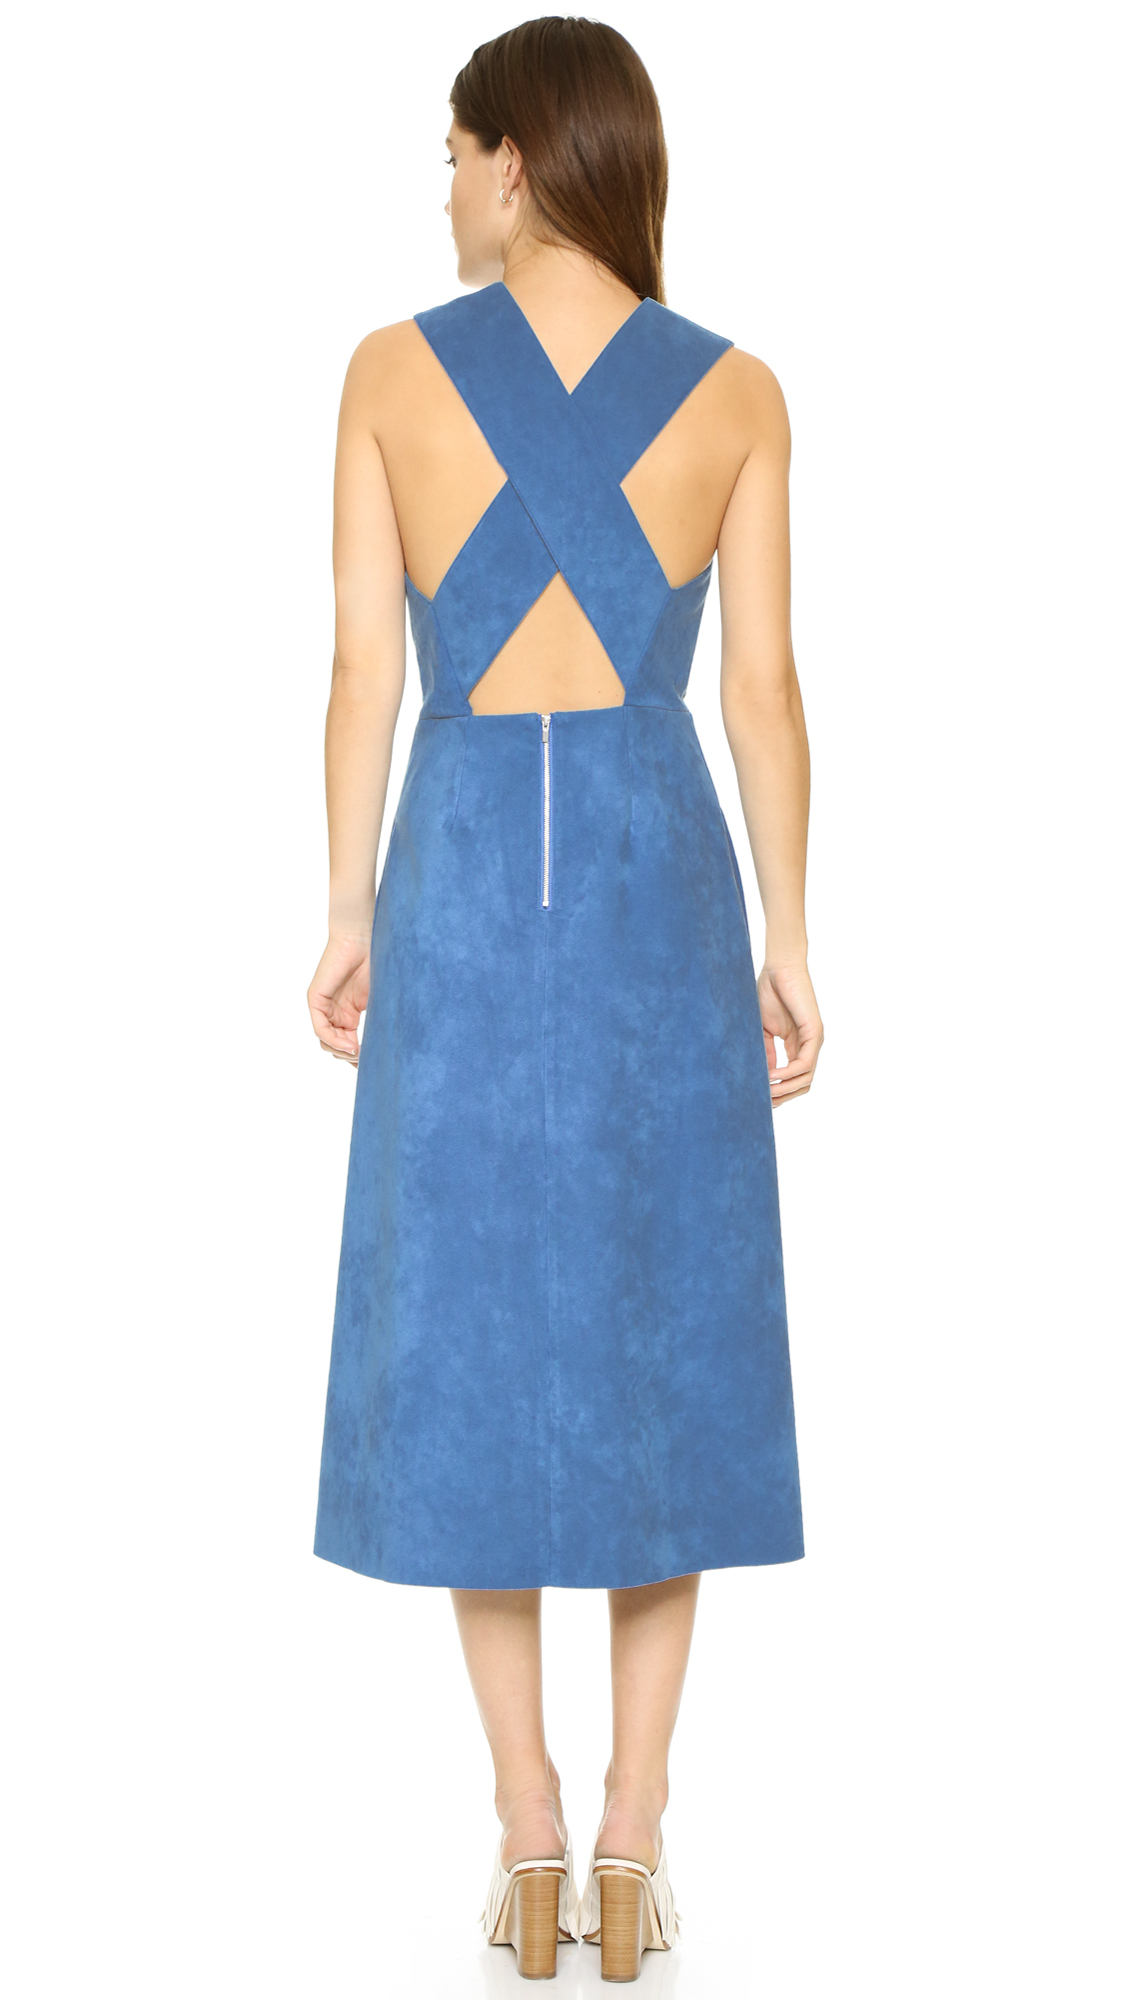 Tibi Faux Suede Overall Dress in Blue | Lyst